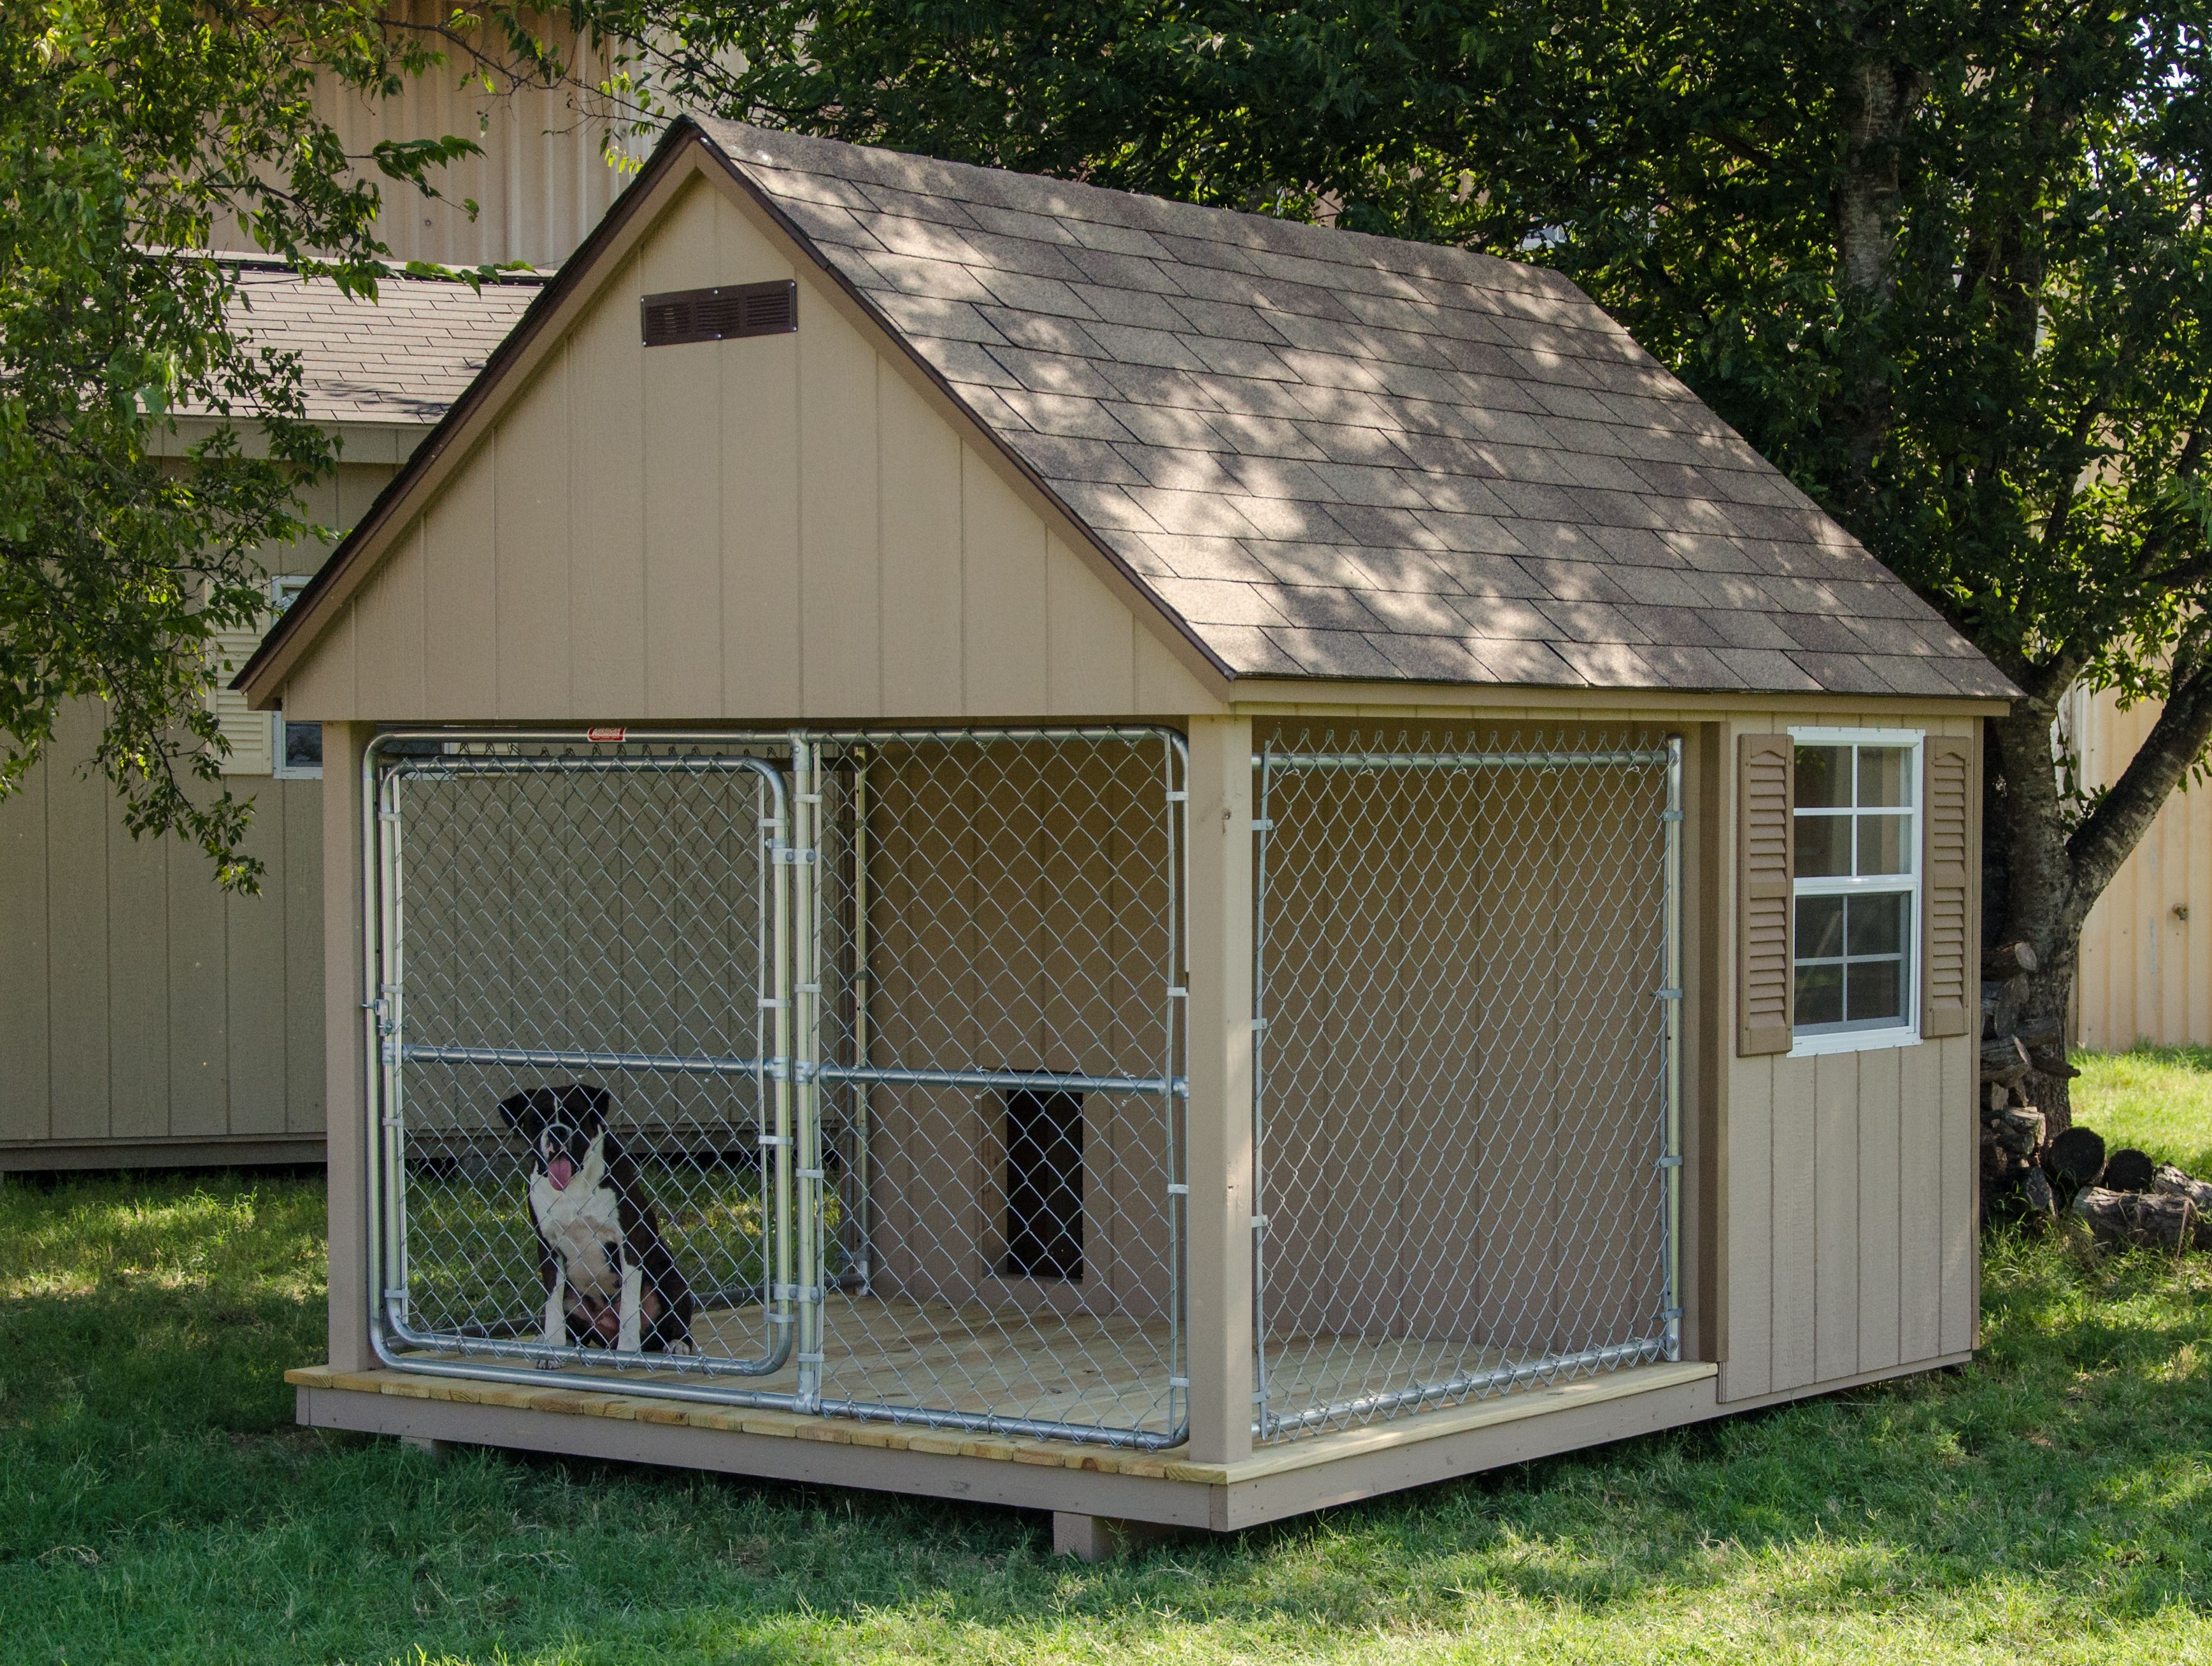 Good Looking For Cheap Outdoor Dog Kennels? Our Dog Kennels Are Durable, Safe,  And